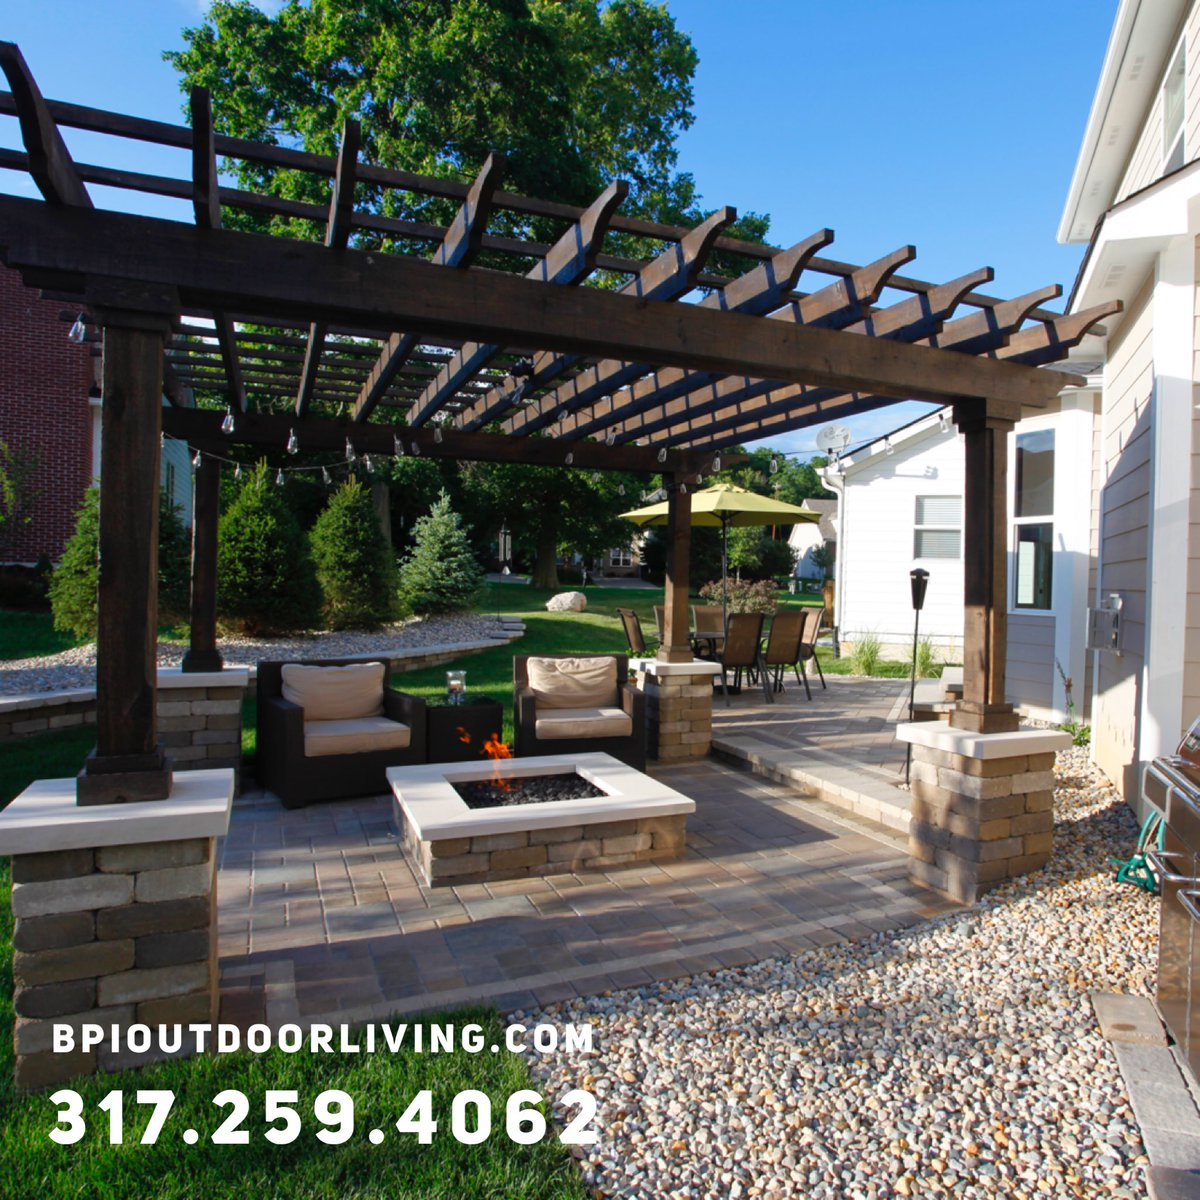 Enchanting Outdoor Living Today Is Day Our Design Team Can Craft Outdoor Living Areafor Your Bpi Outdoor Living Twitter Backyard Fireplaces Outdoor Living America S Backyard outdoor Backyard Outdoor Living